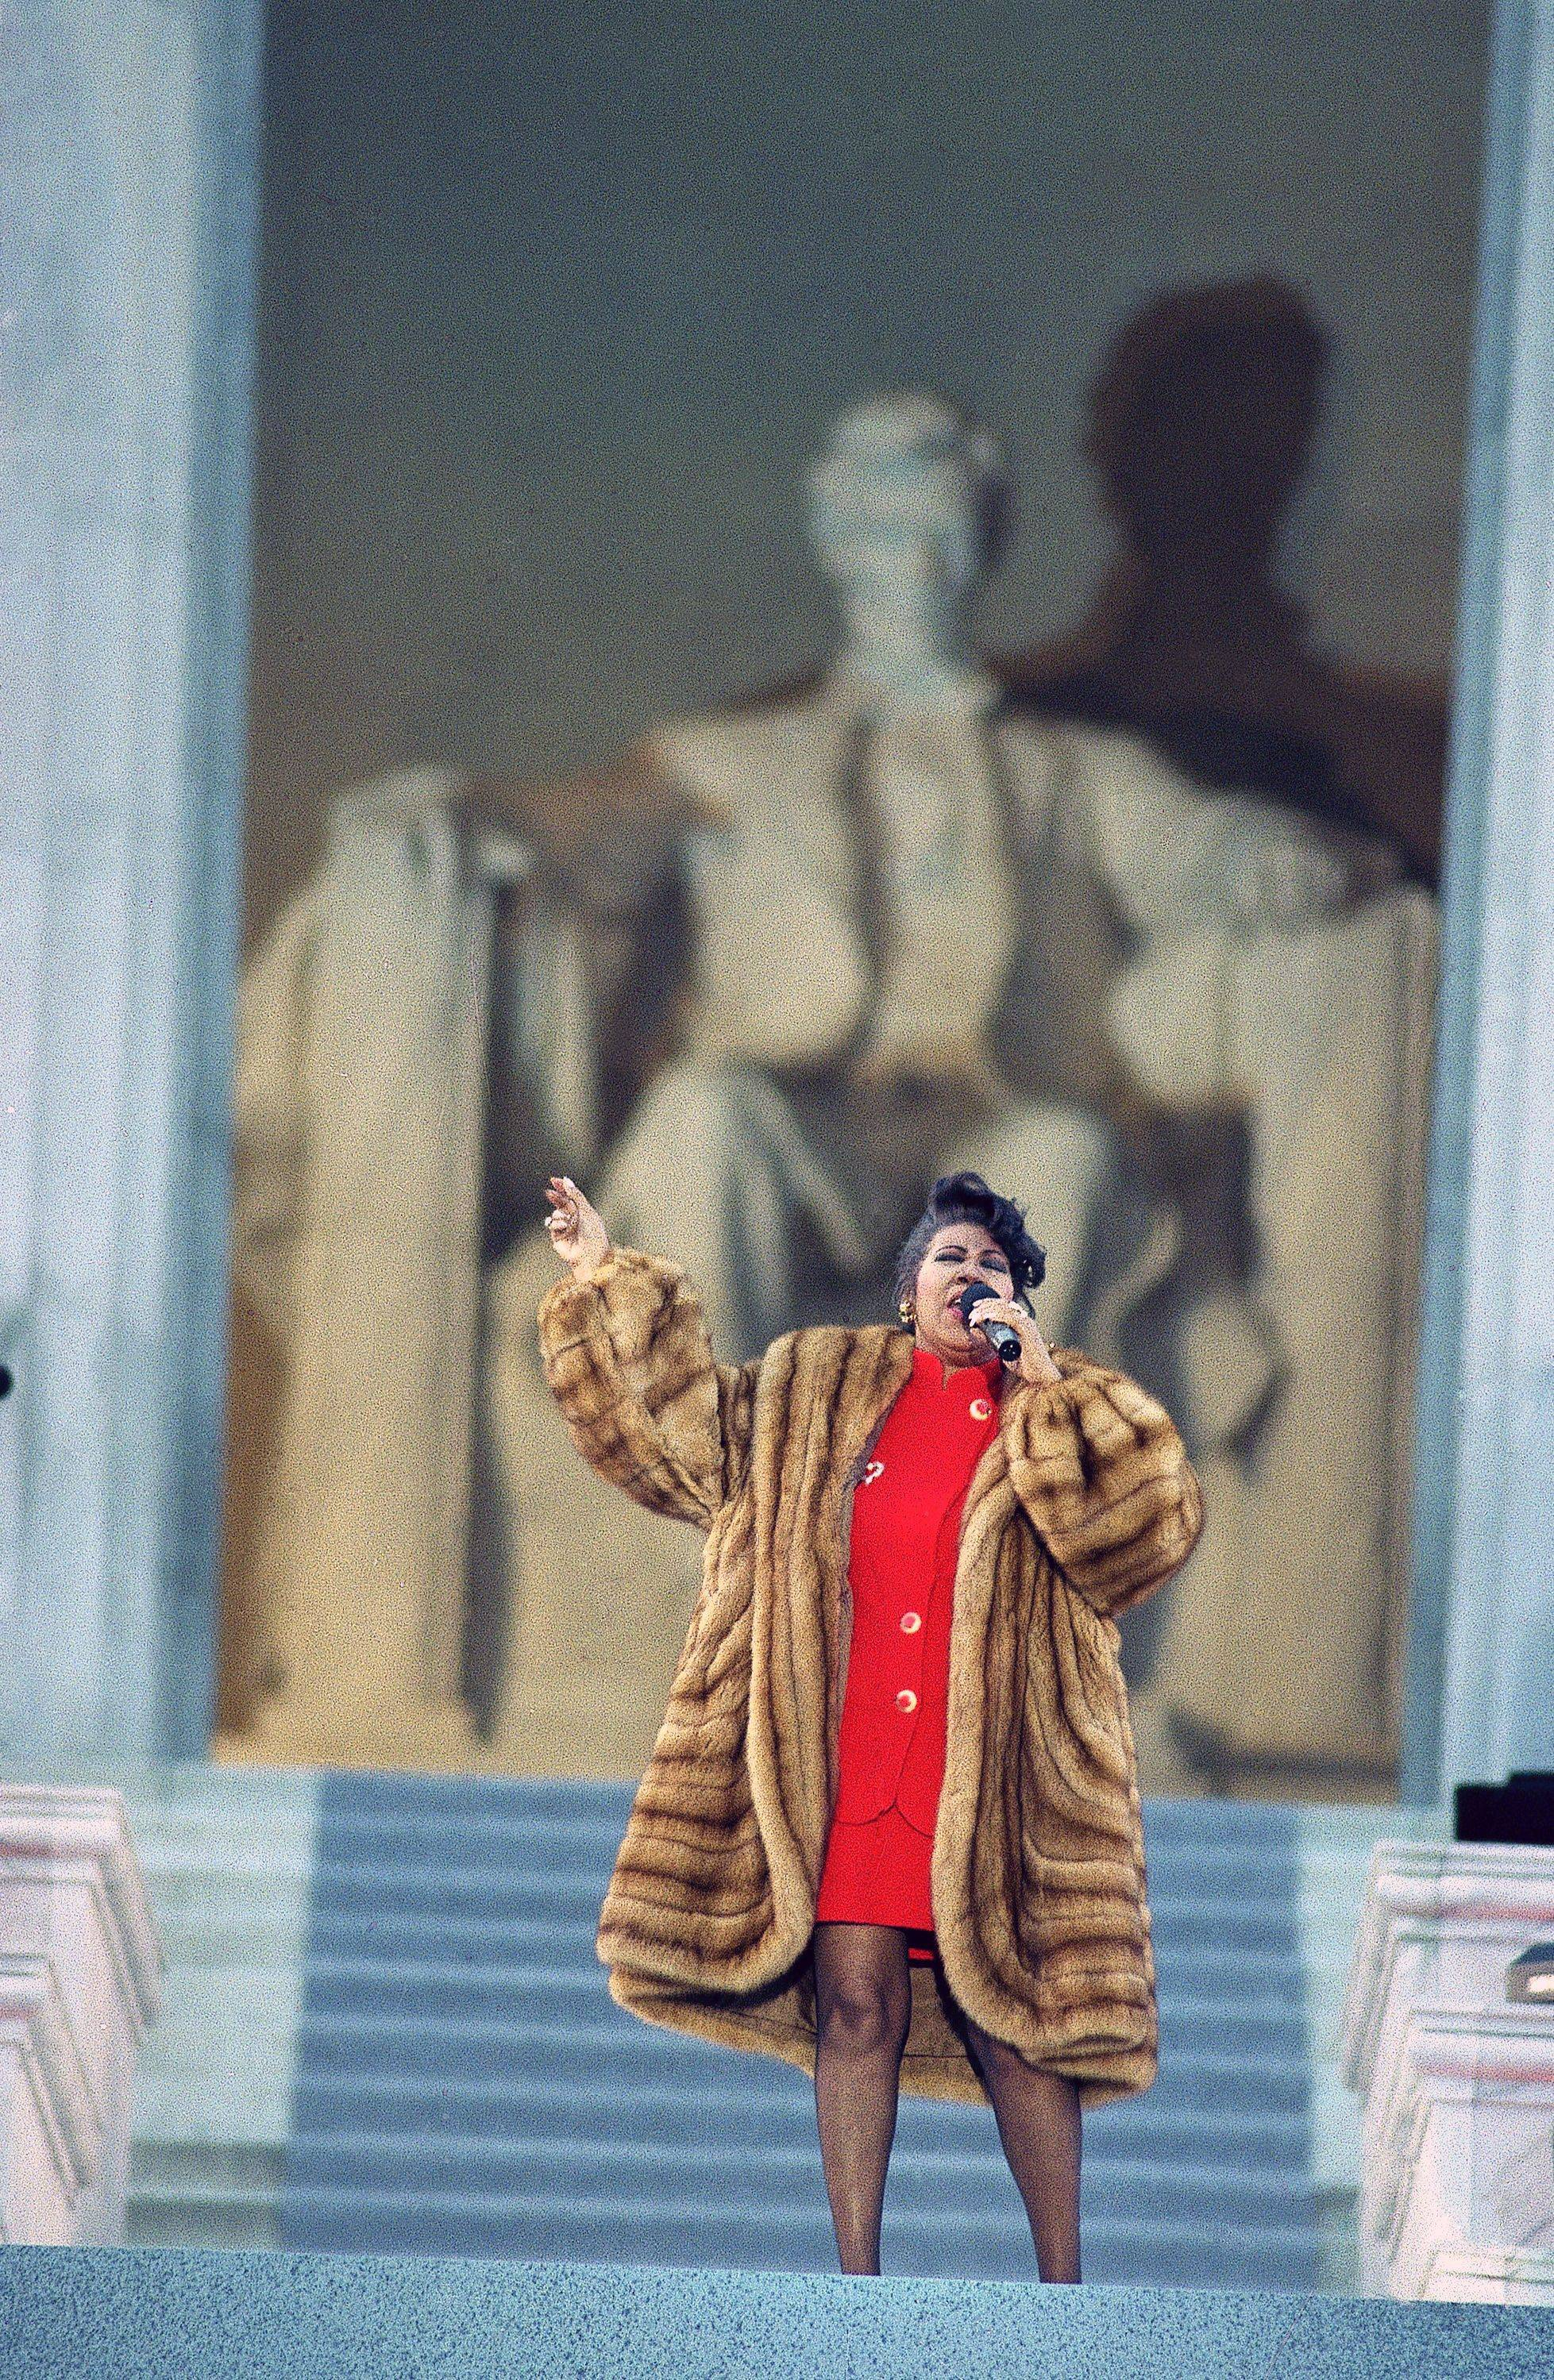 Aretha Franklin performs at pre-inaugural concert at the Lincoln Memorial, Washington, Jan. 1993.